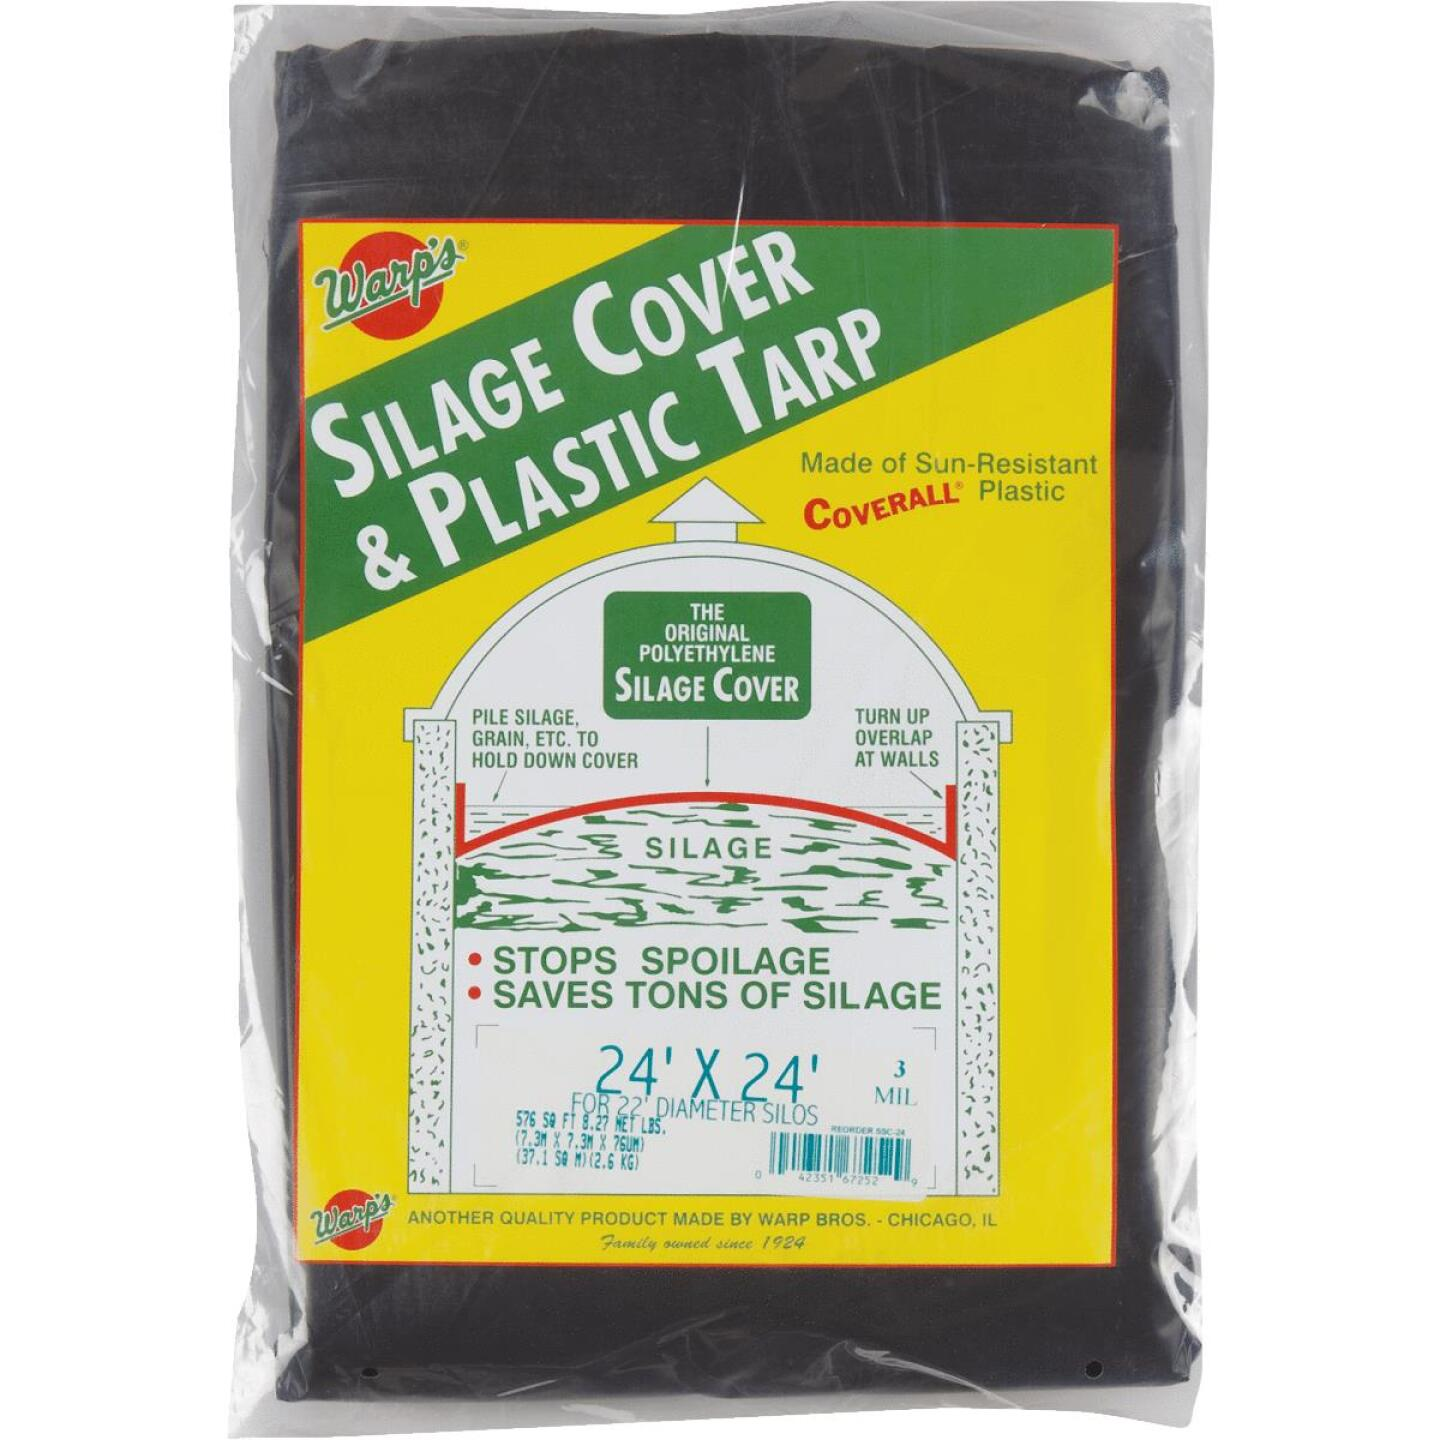 Warp's 24 Ft. X 24 Ft. Coverall Polyethylene 3 Mil. Silage Cover Image 1